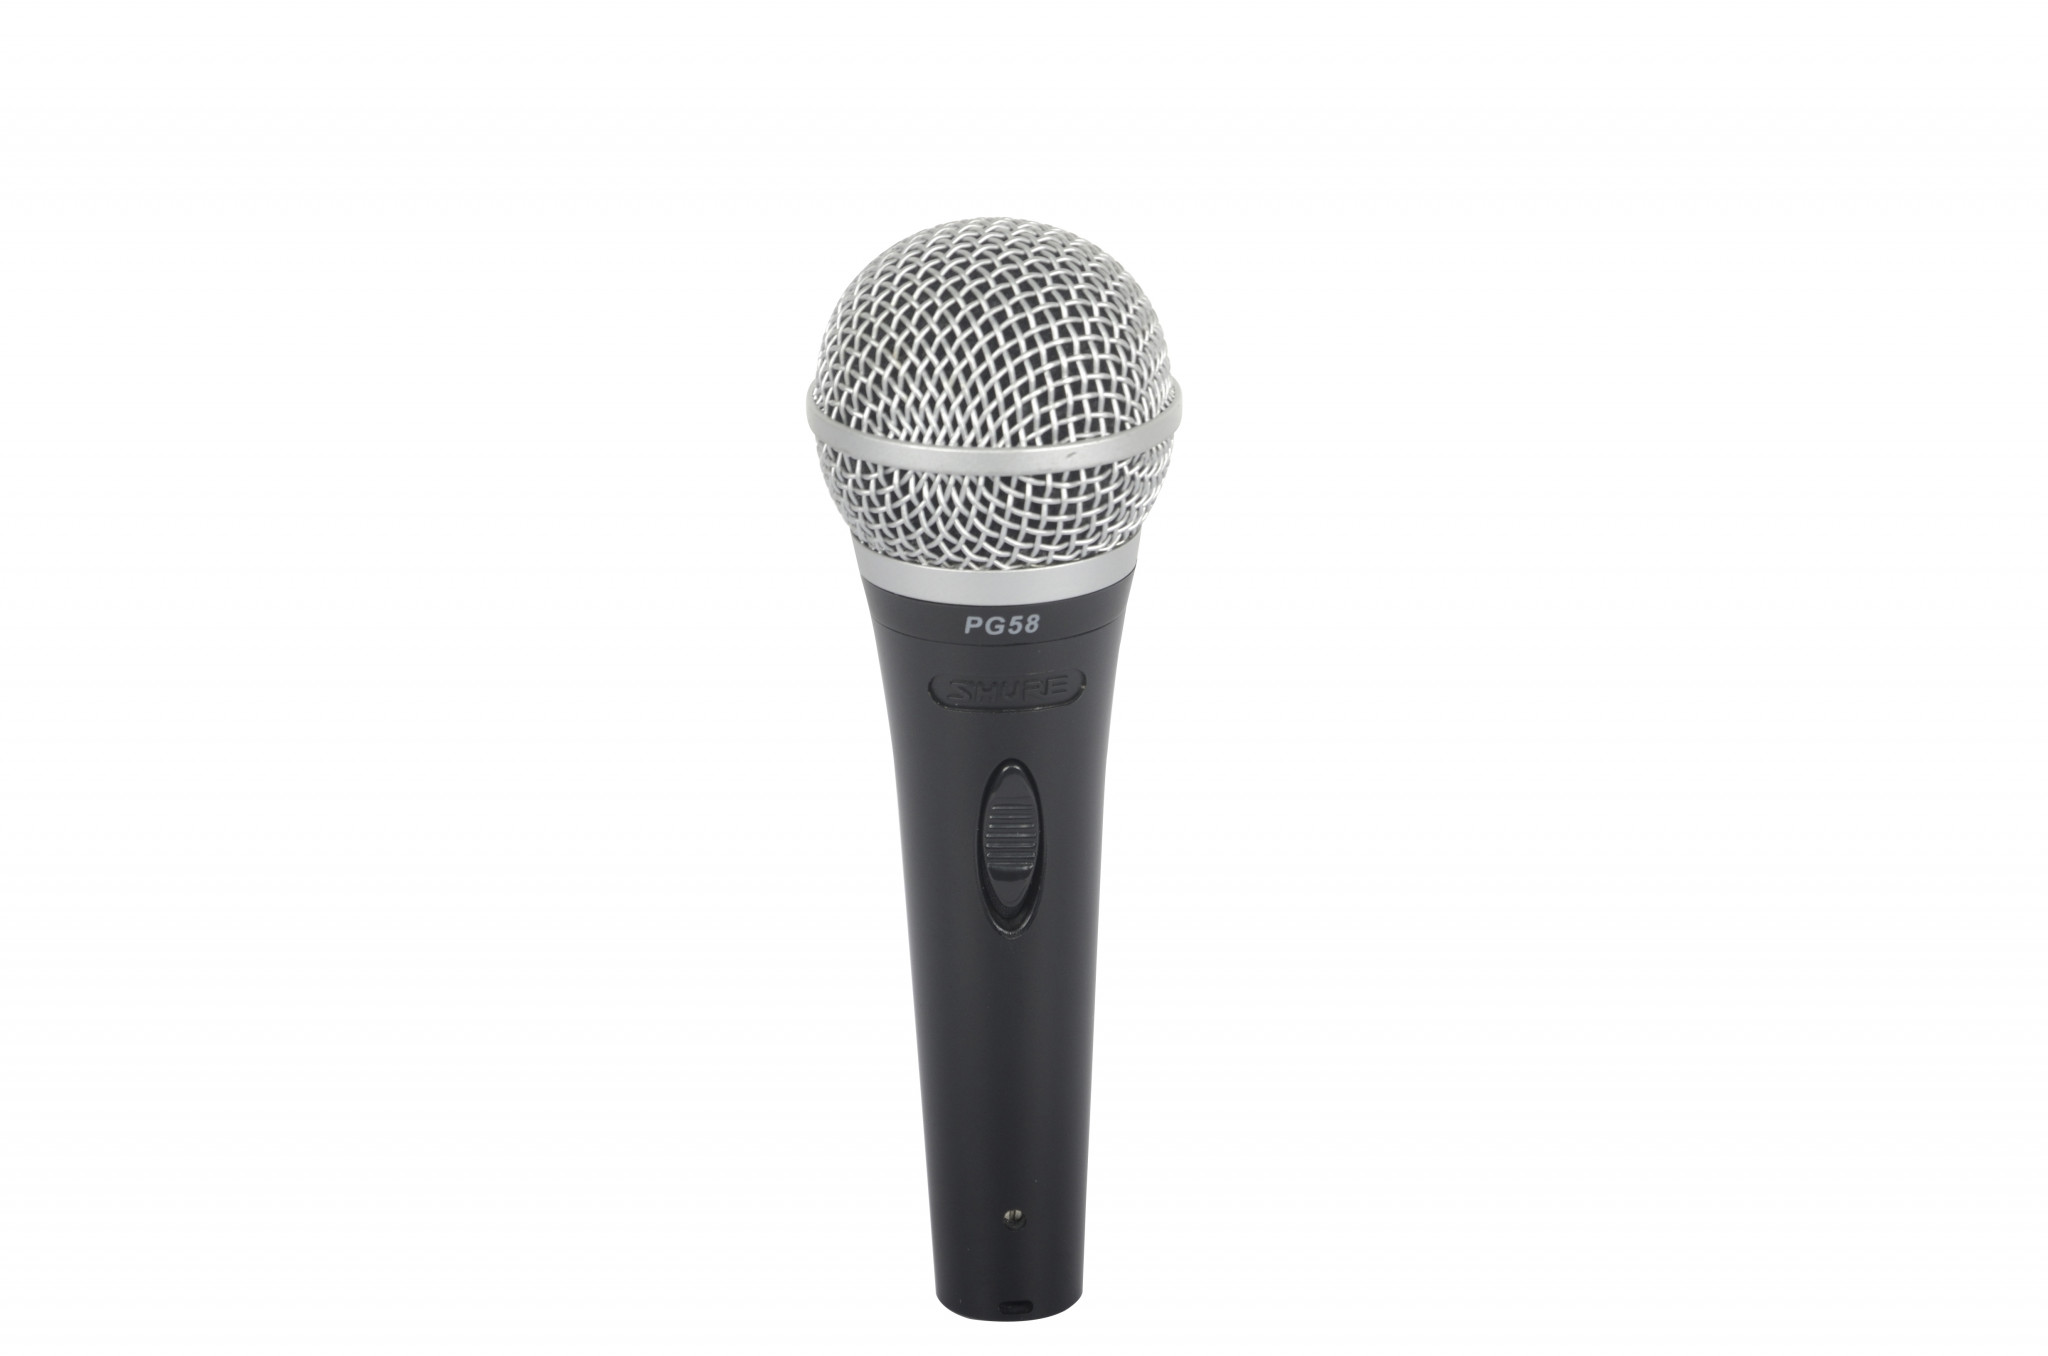 PG58 wired microphone